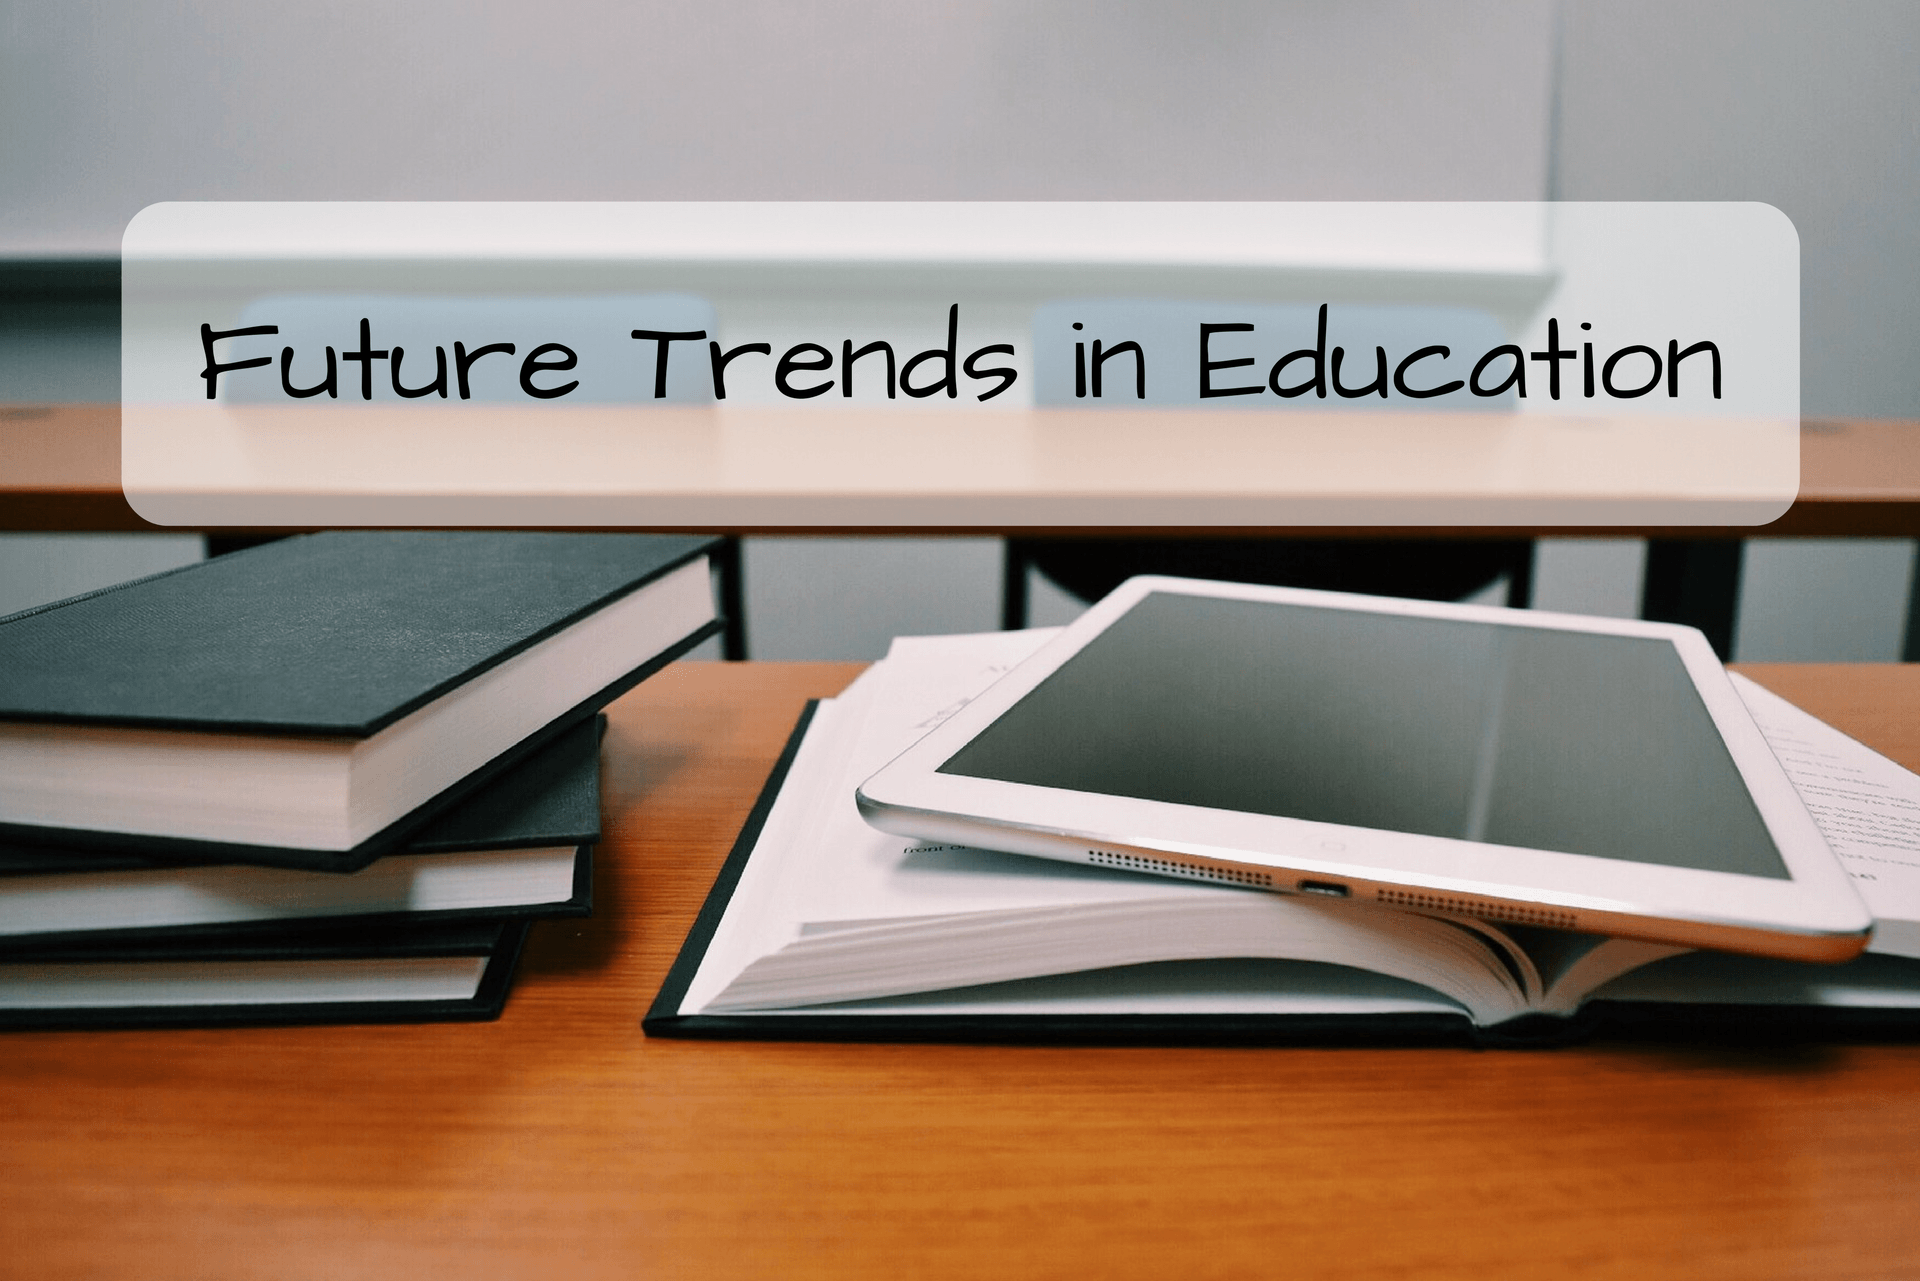 14 Current and Future Trends in Education